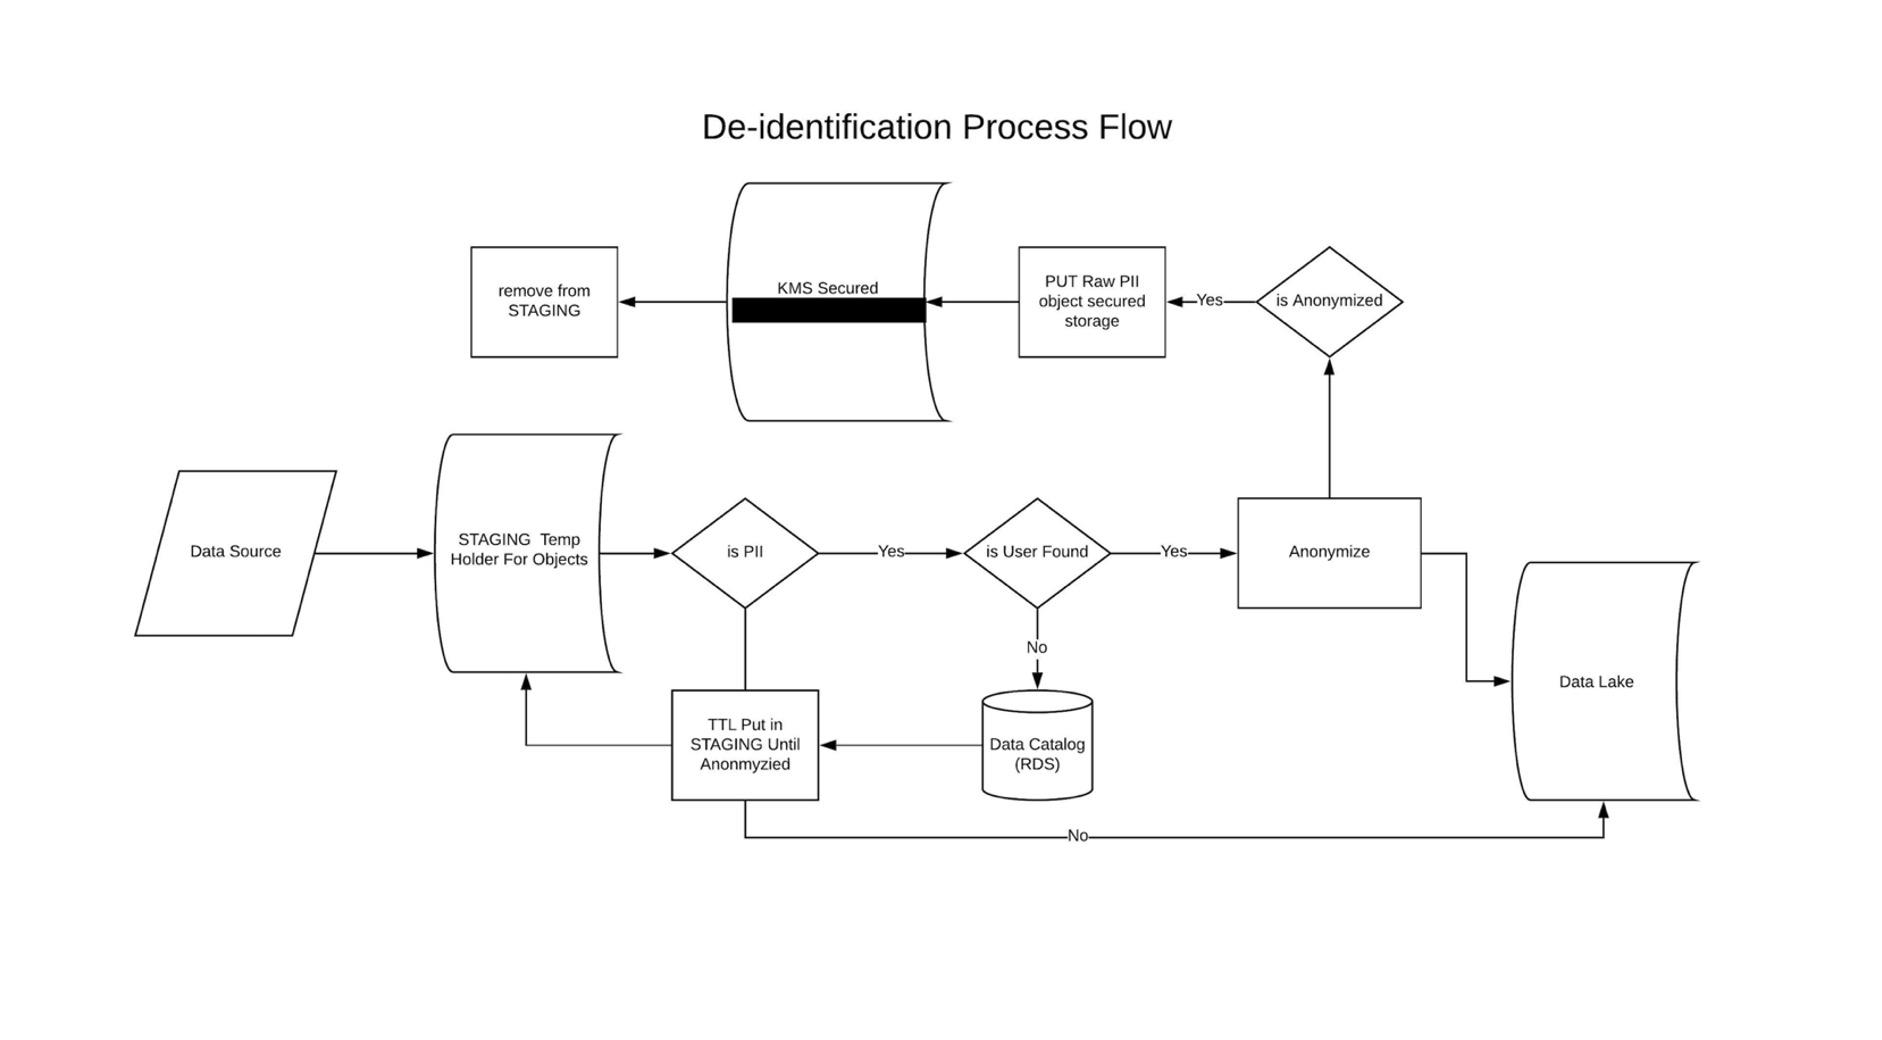 de-identificatin process flow